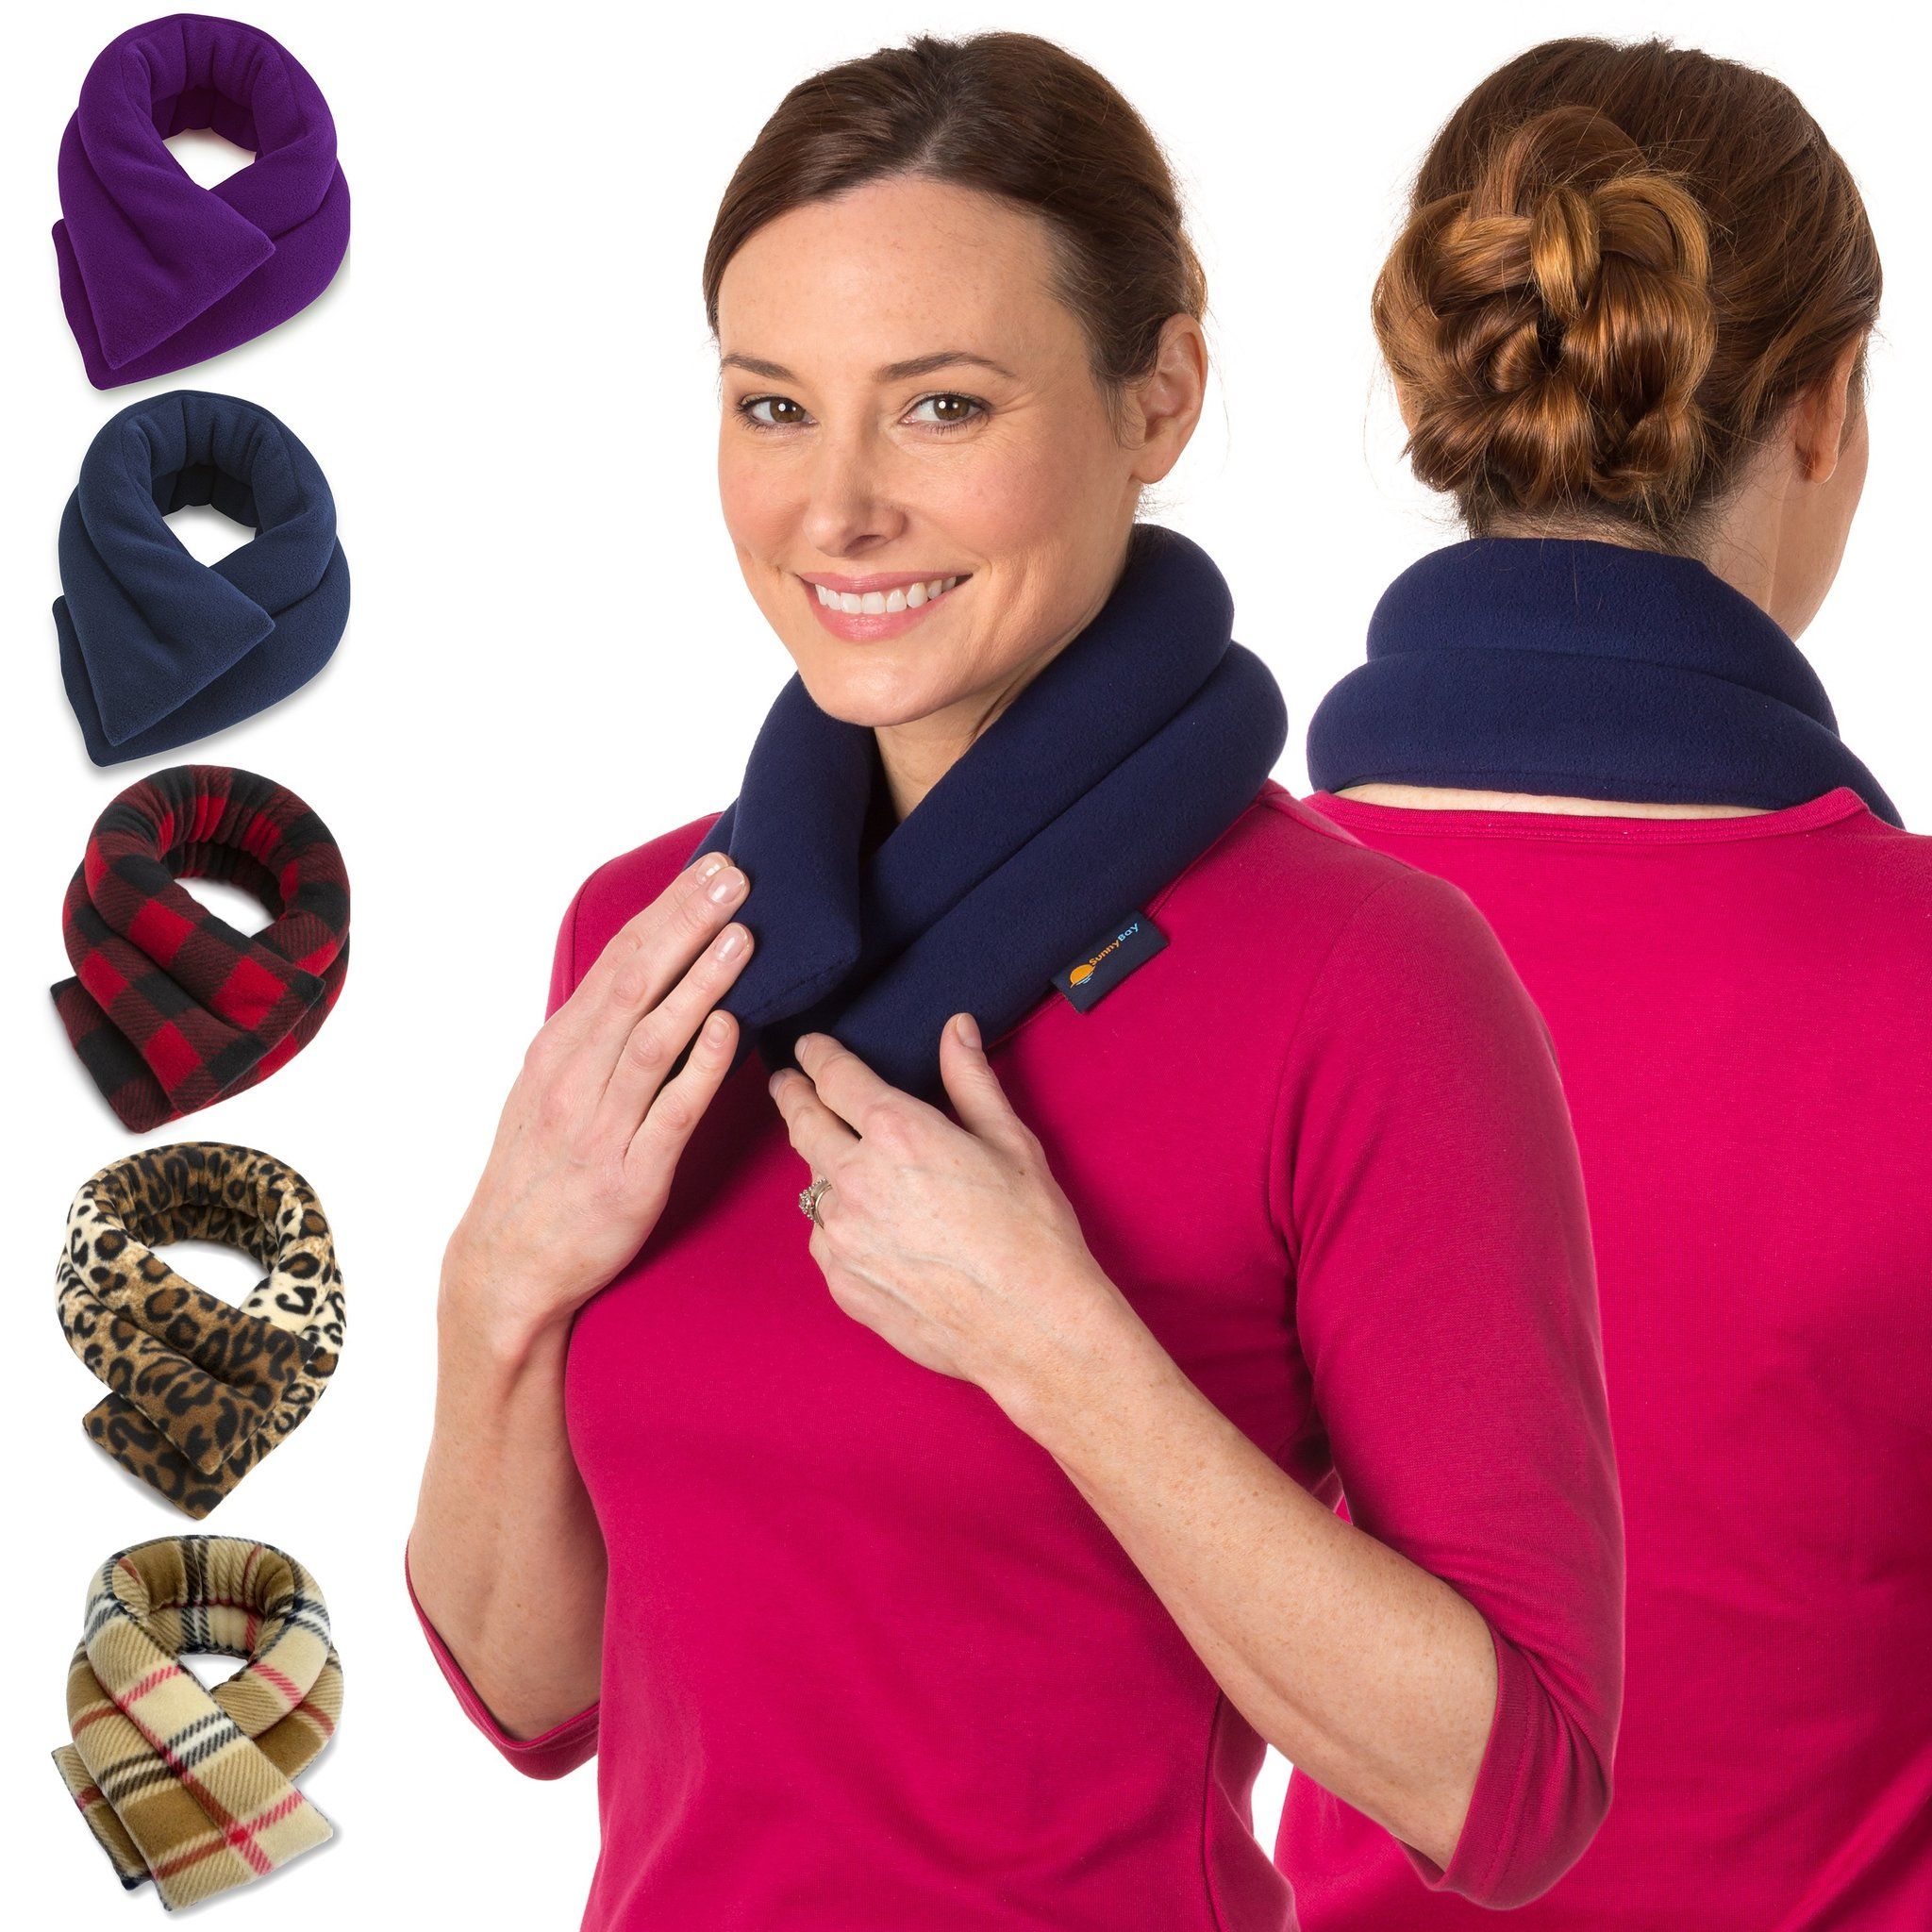 sunnybay extra long neck heating wrap microwavable heat pad heated neck wrap best for neck pain relief midnight blue walmart com